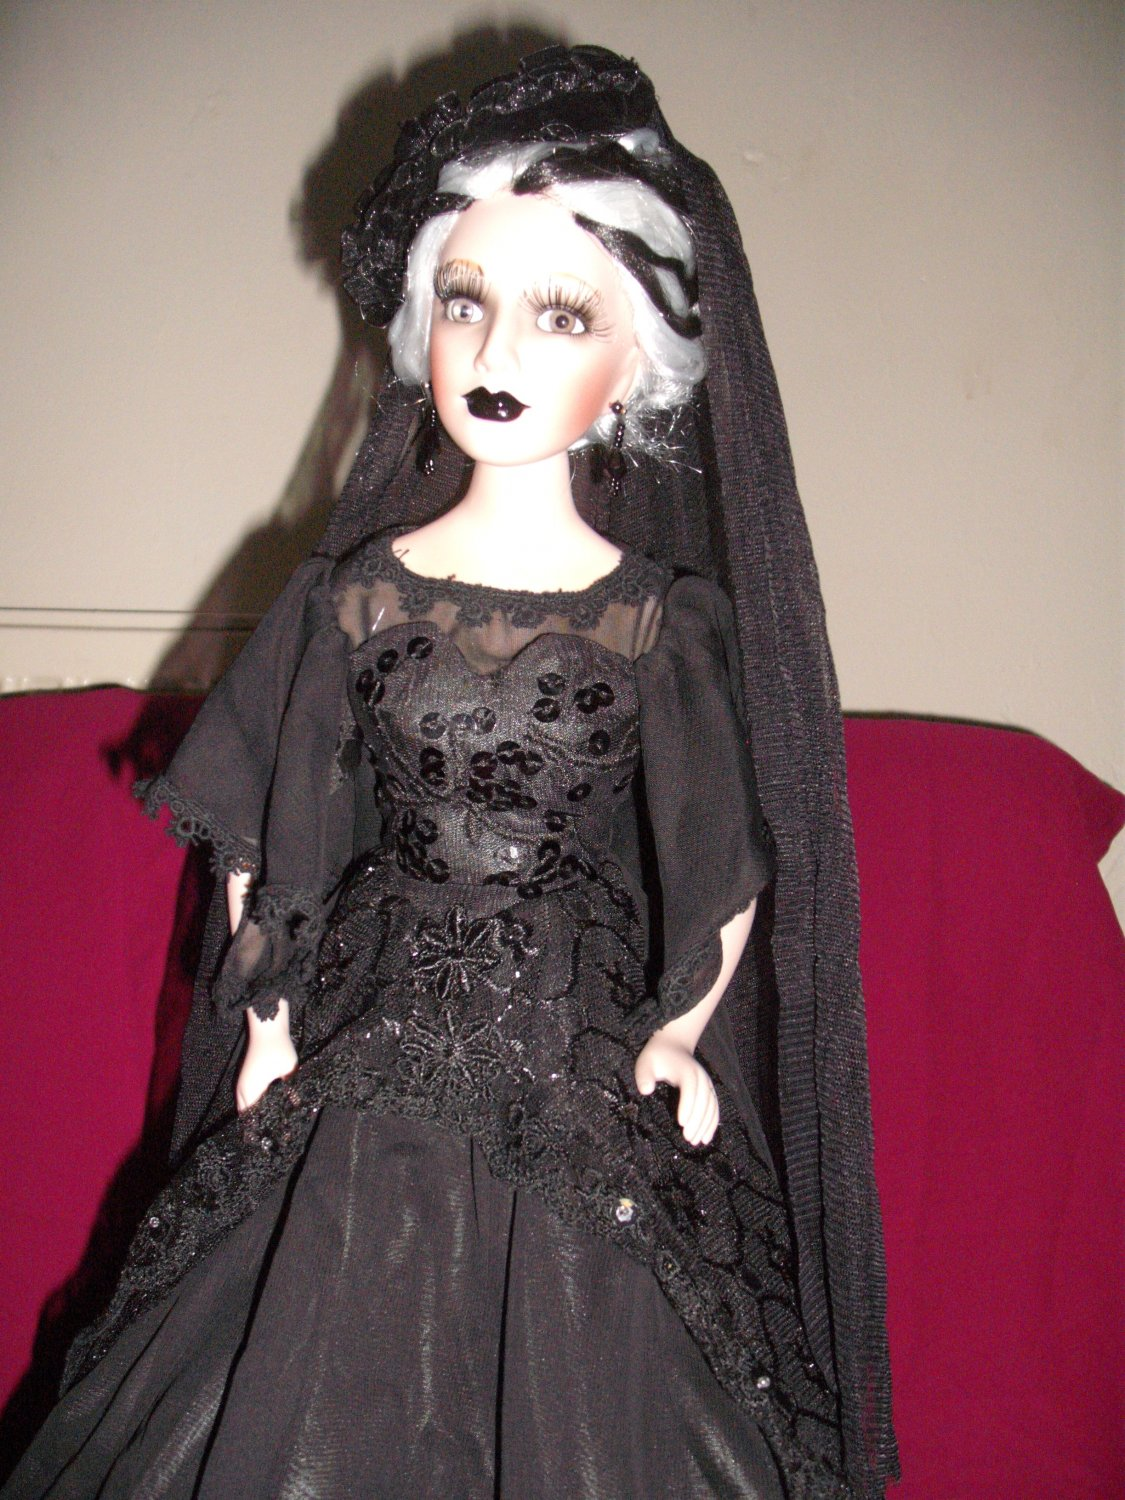 Ceramic 19inch Gothic Doll from Vixens of the Underworld